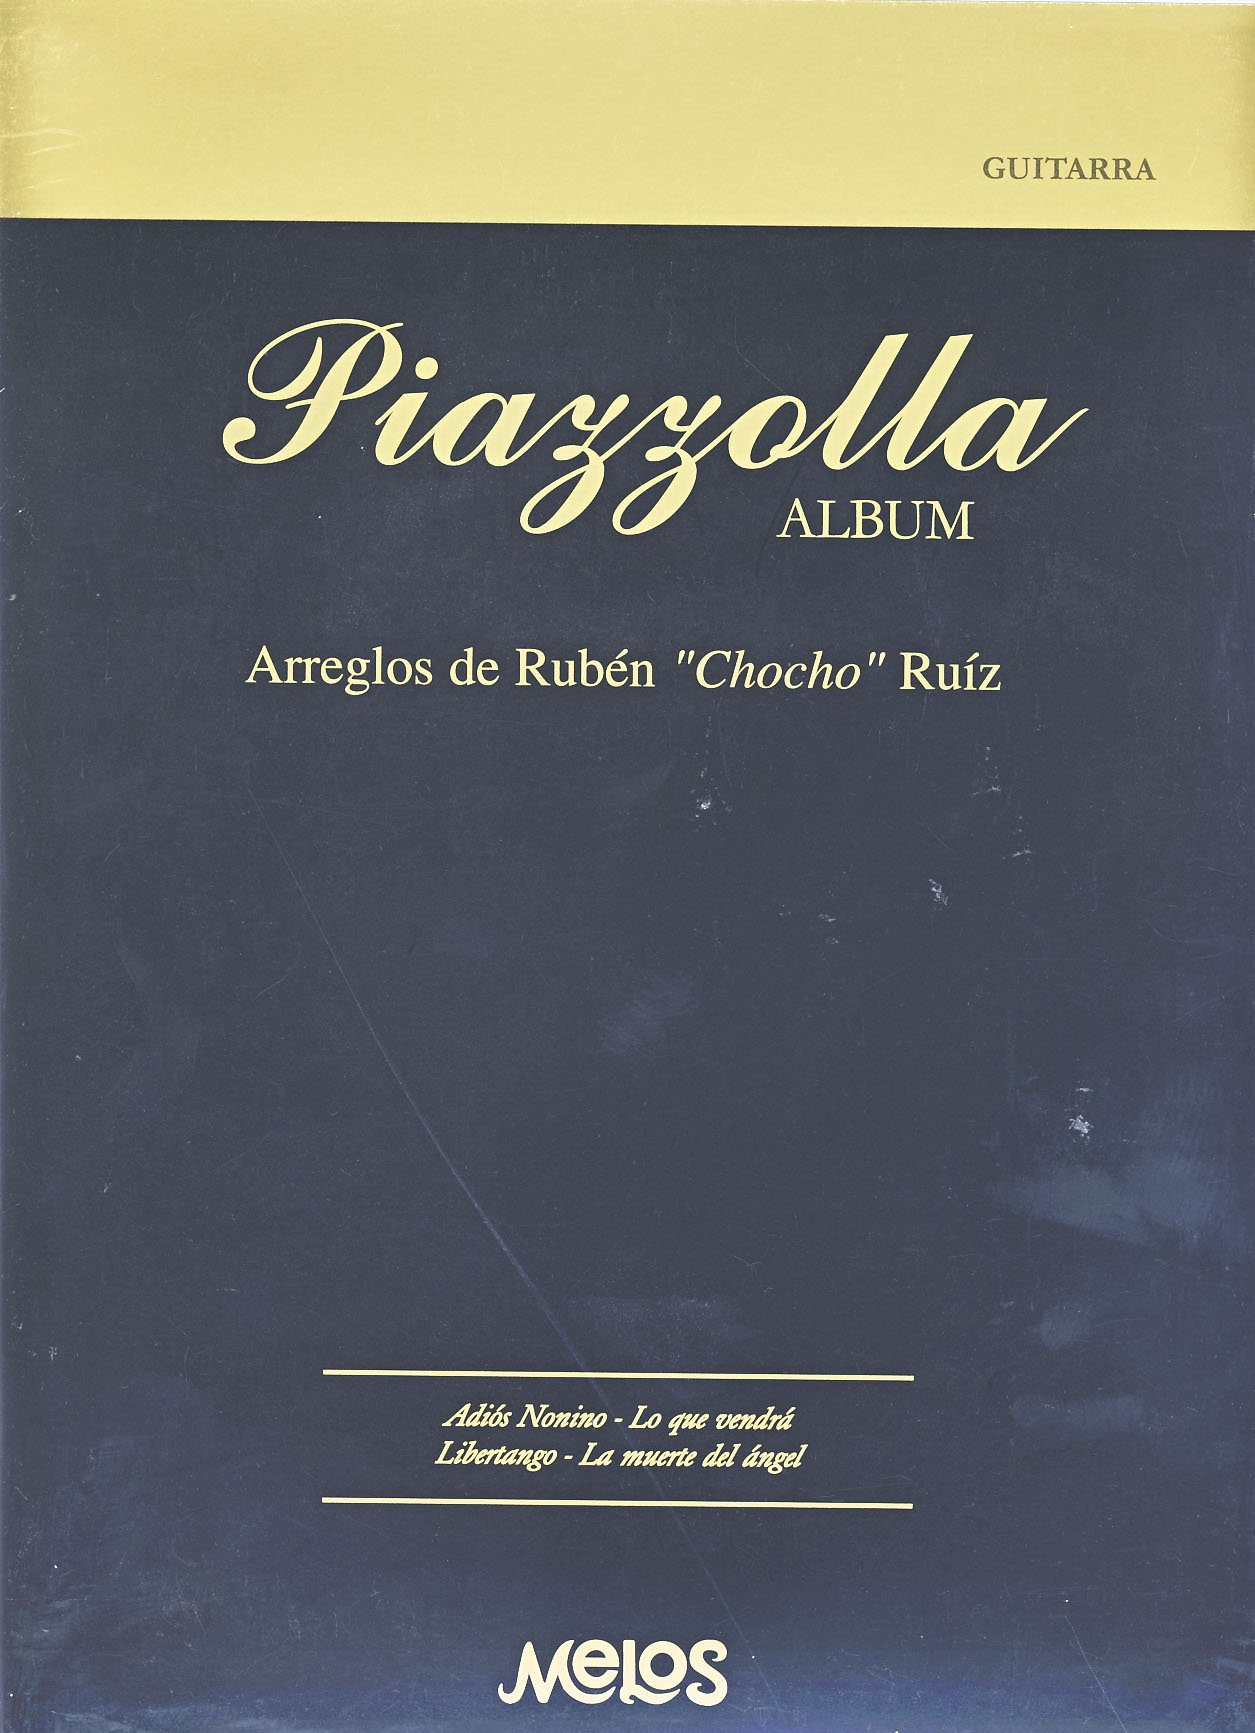 ALBUM (RUIZ): Amazon.es: Piazzolla Astor: Libros